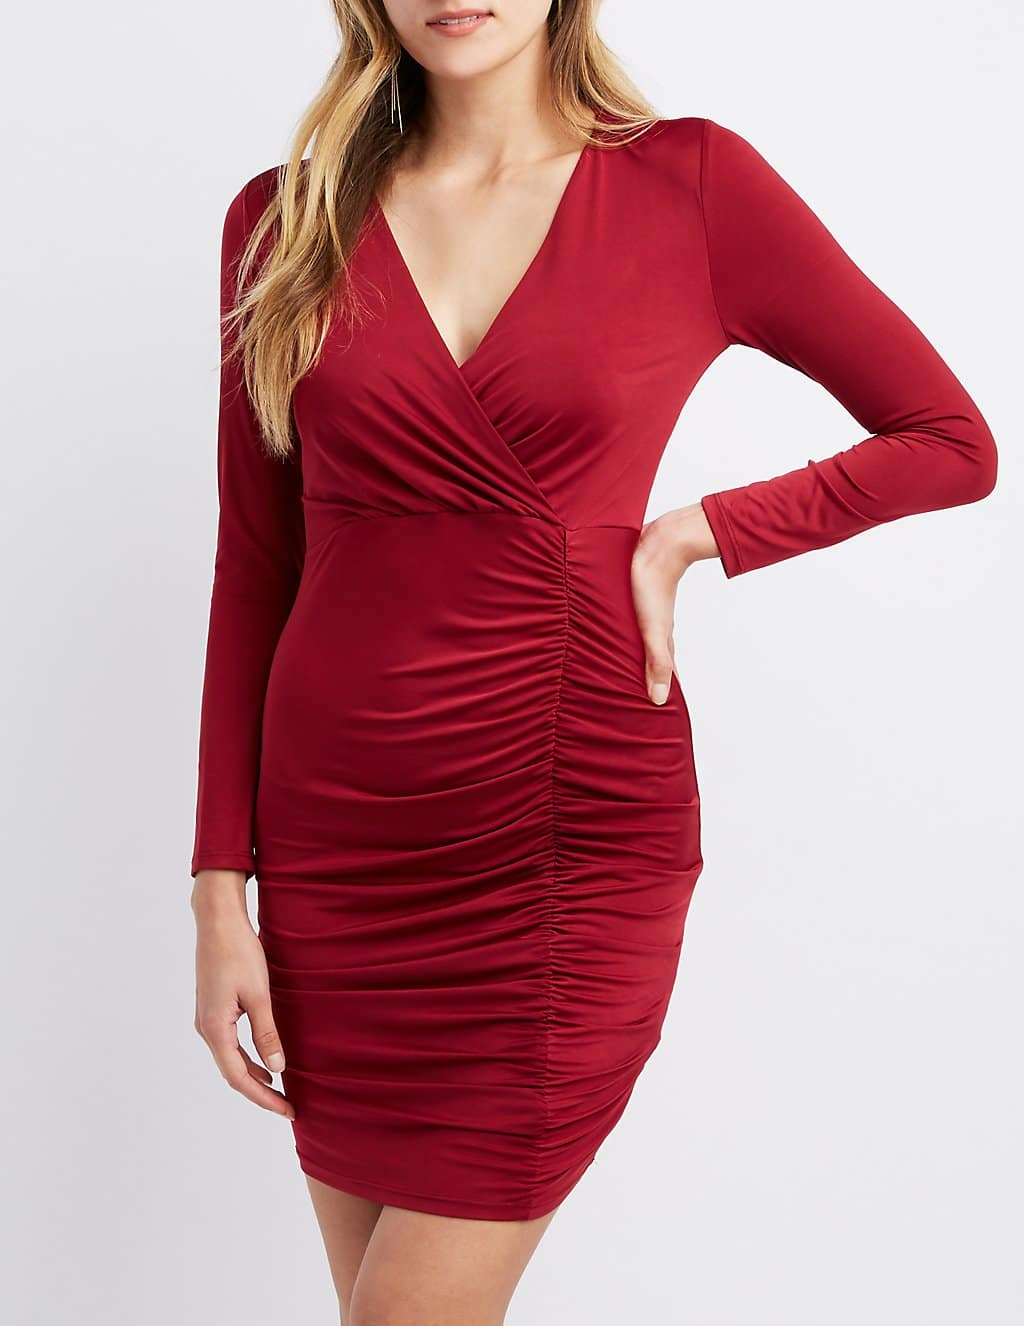 a327990b4cf21 Charlotte Russe Clearance Sale: Surplice Ruched Bodycon Dress ...